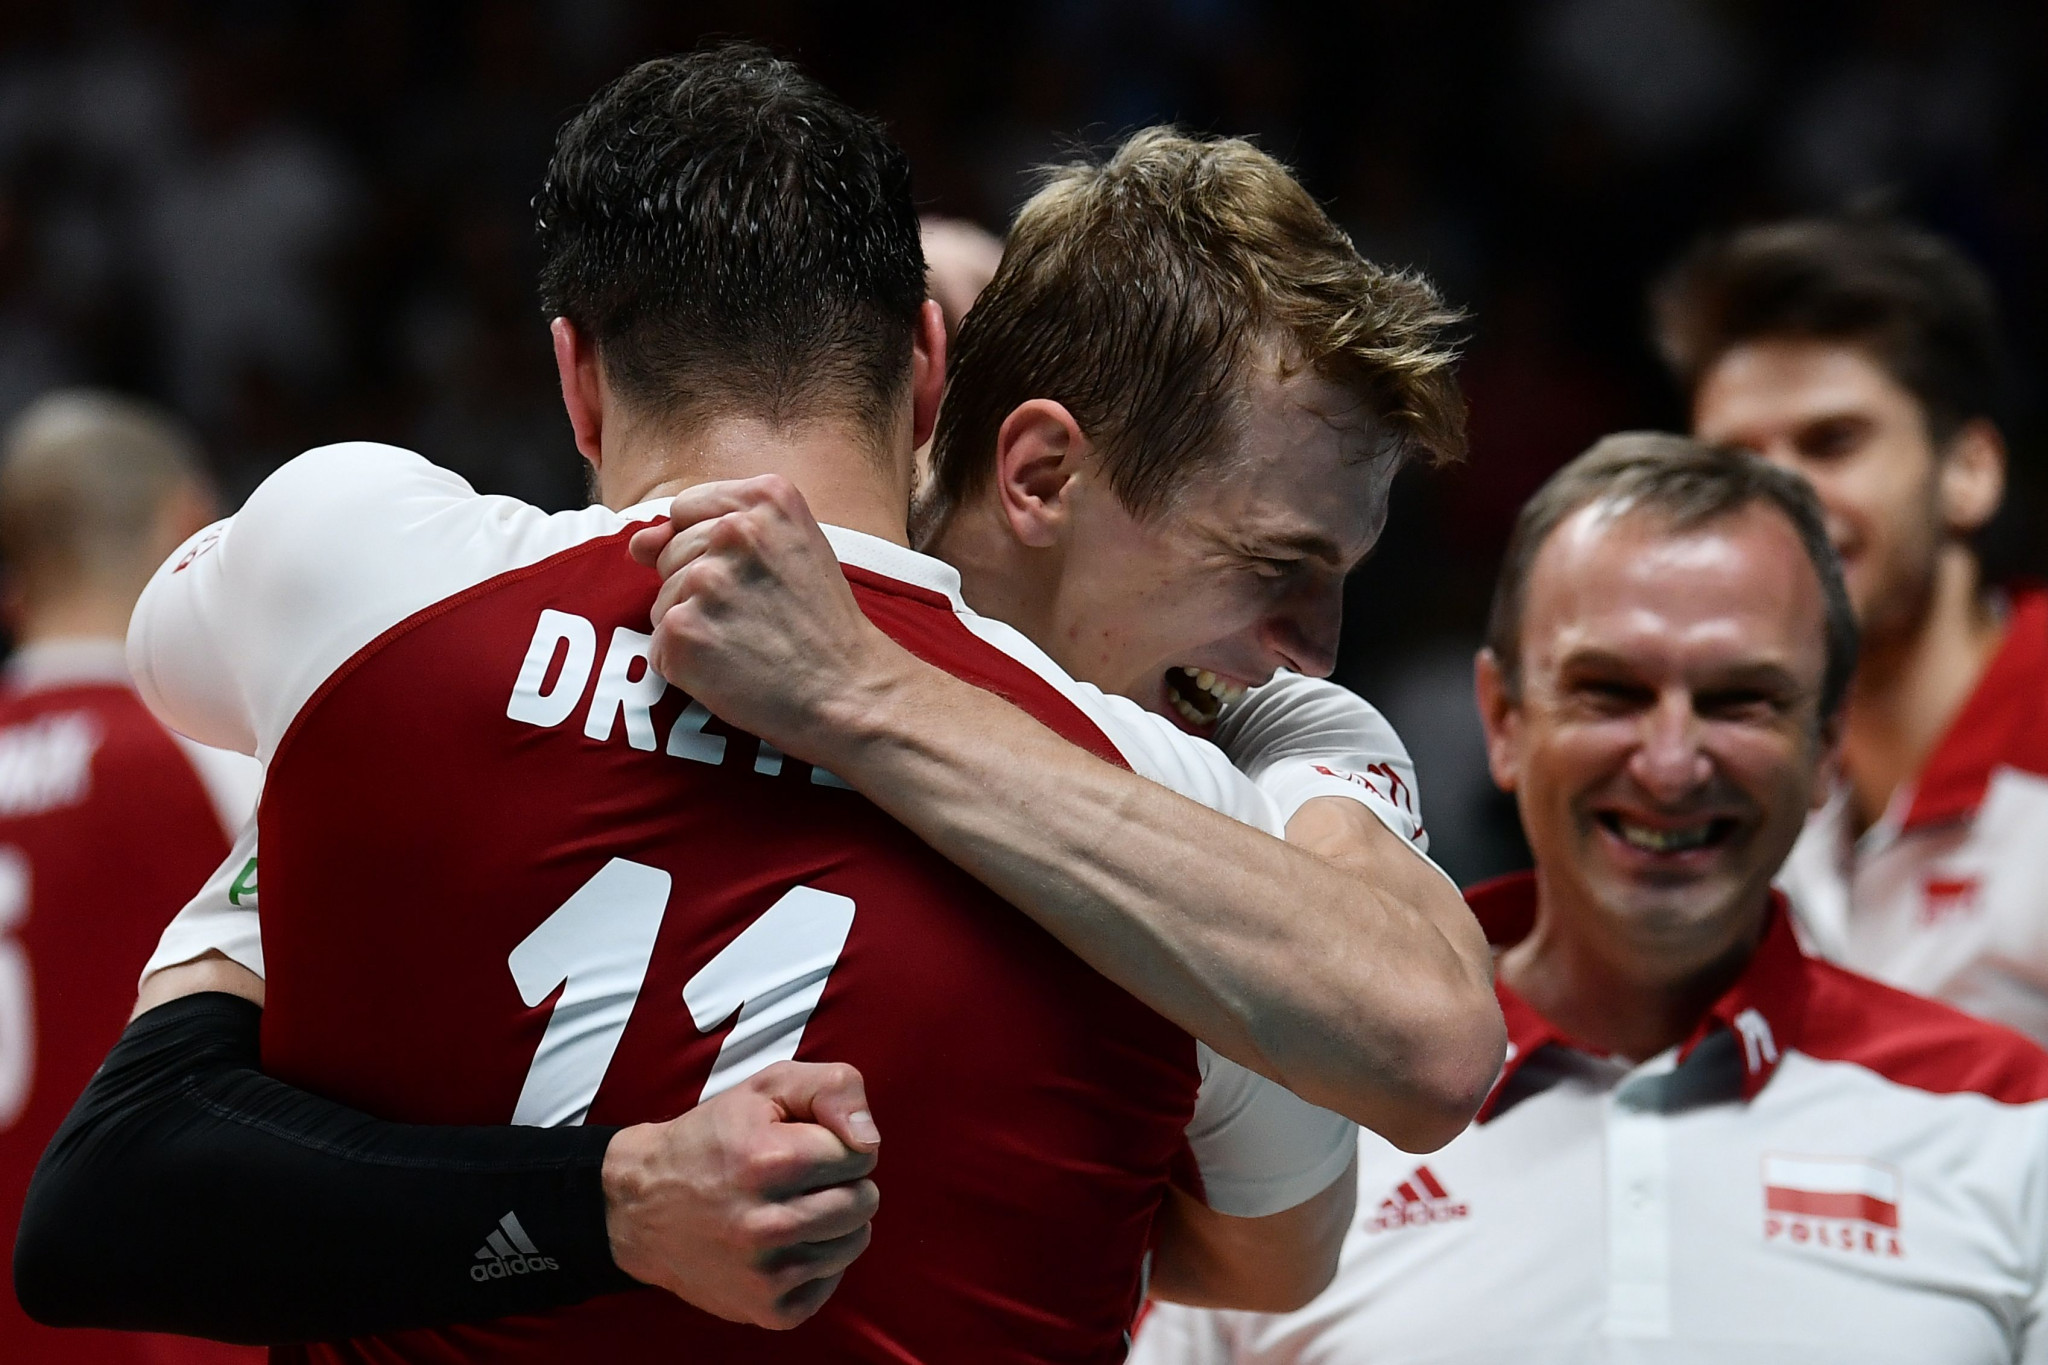 Poland beat Brazil in three sets to win the FIVB Men's Volleyball World Championships in Turin ©Getty Images